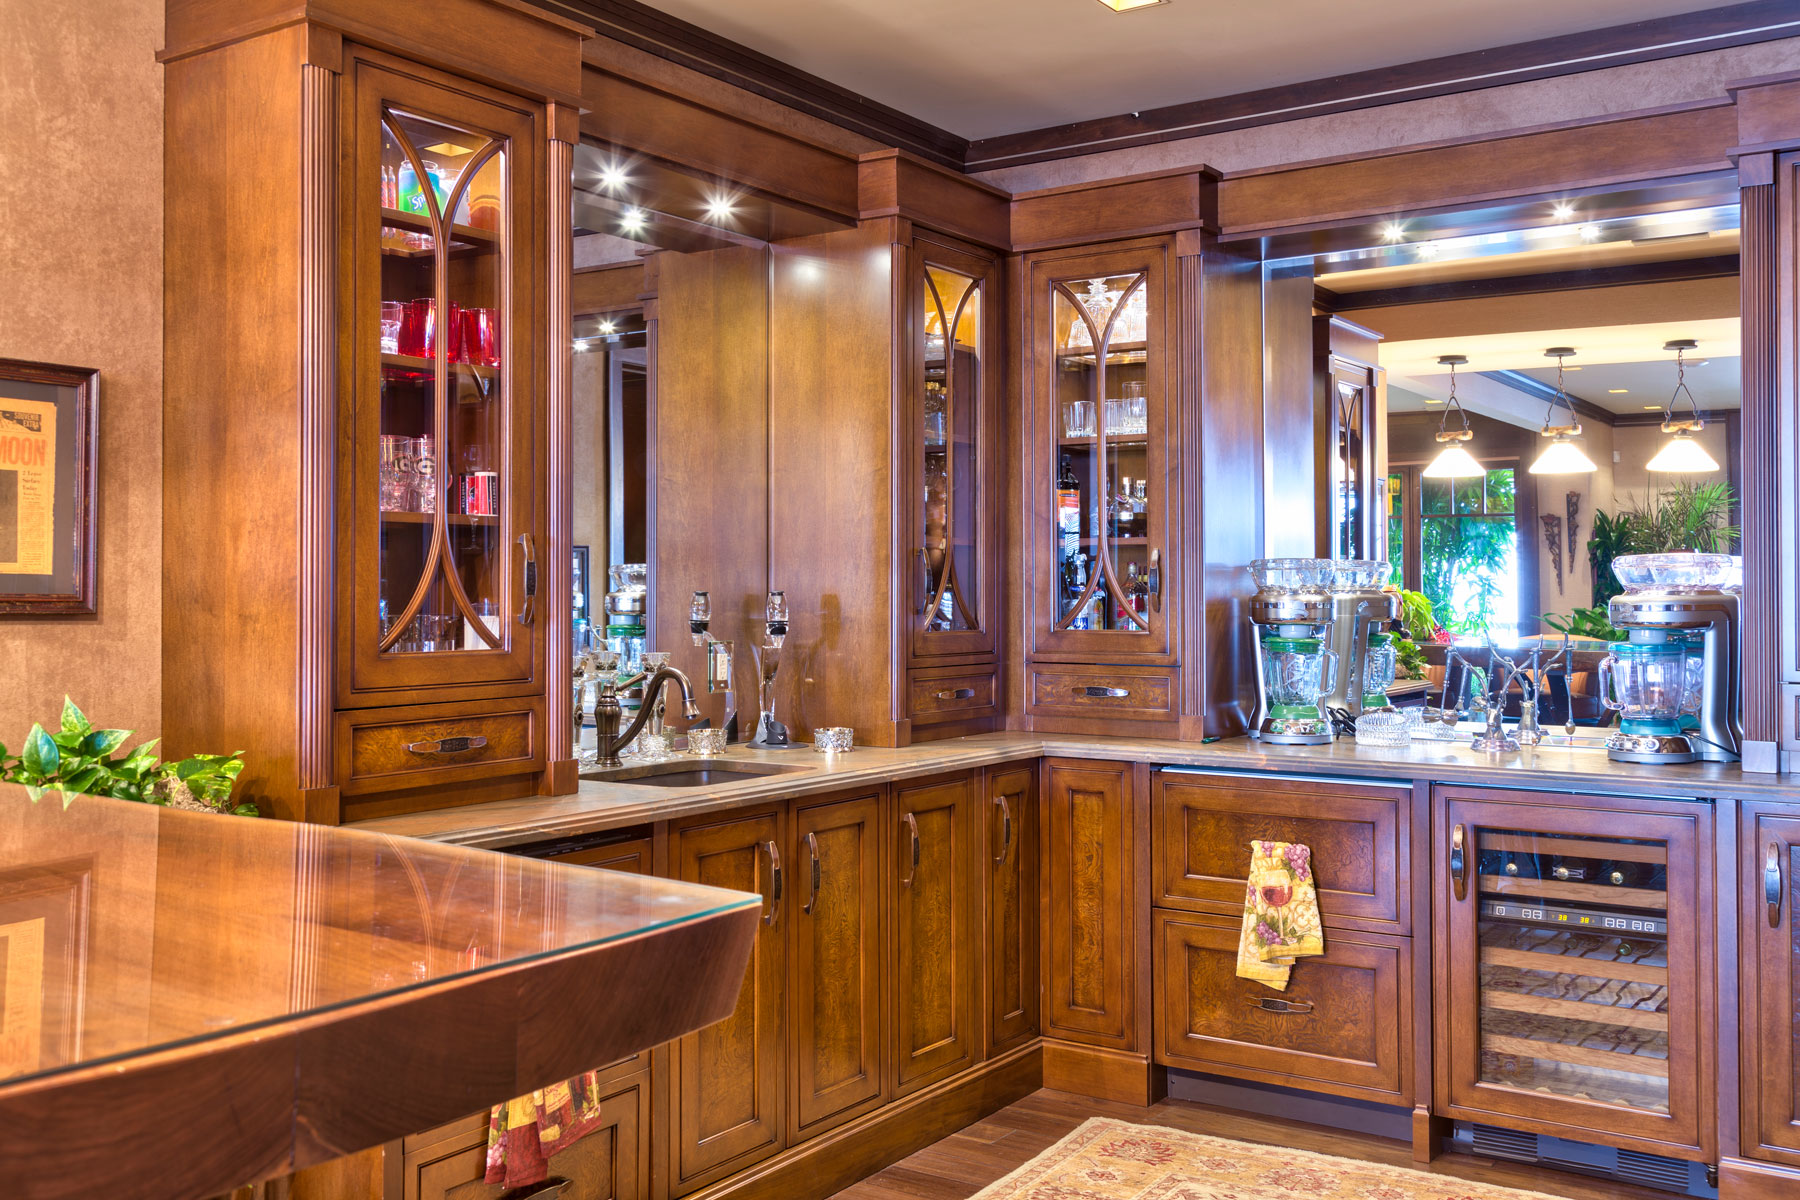 rich-cabinets-entertaining-bar-awesome